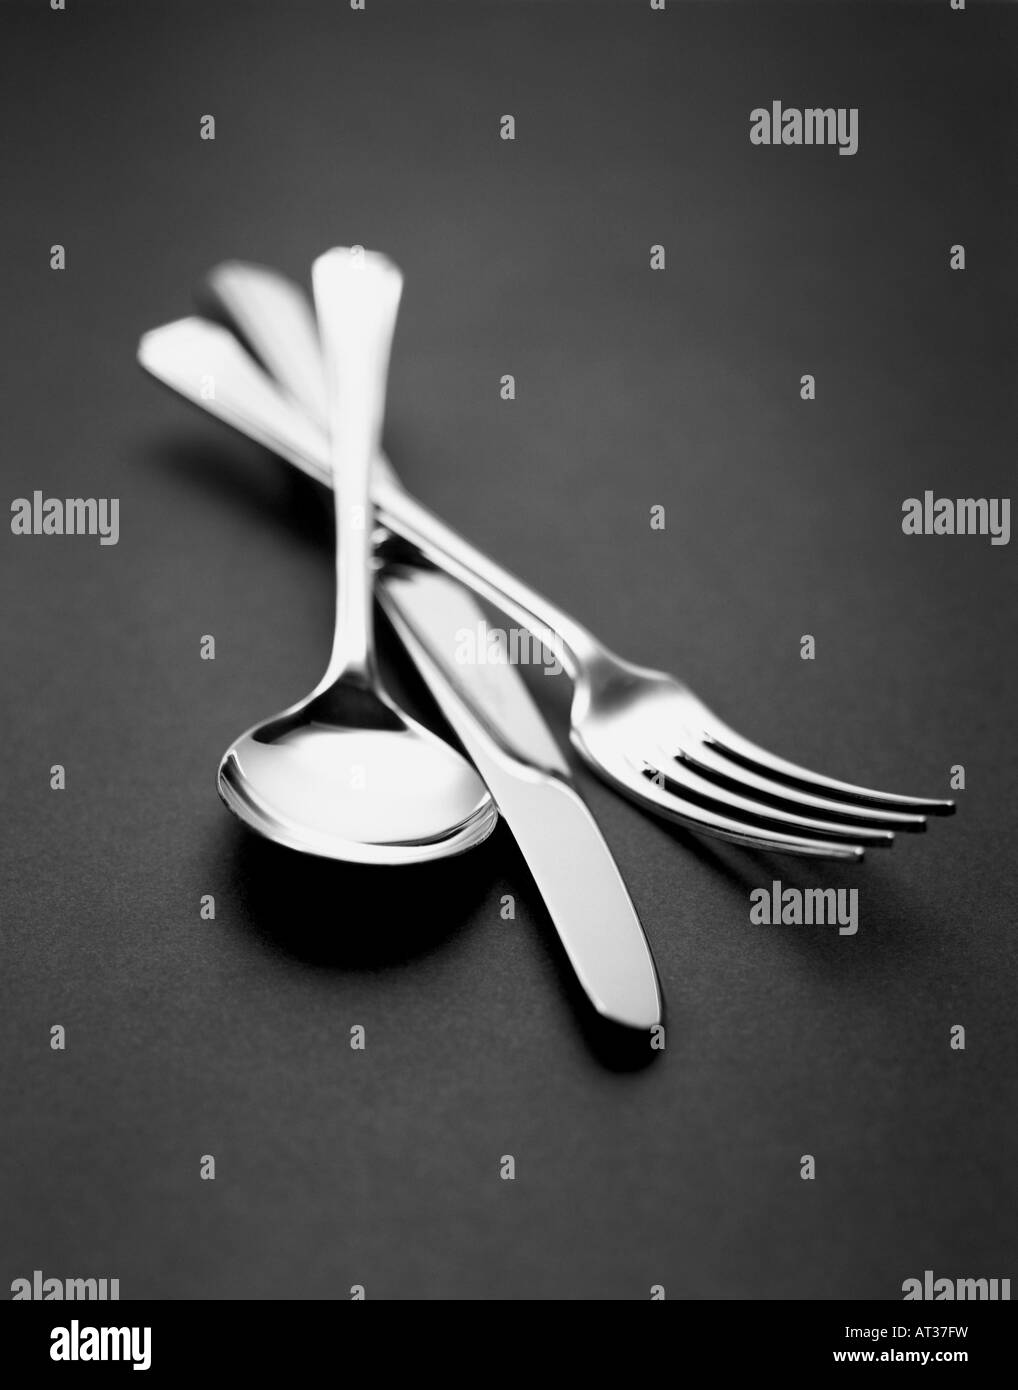 A silver knife, fork and spoon, black and white - Stock Image